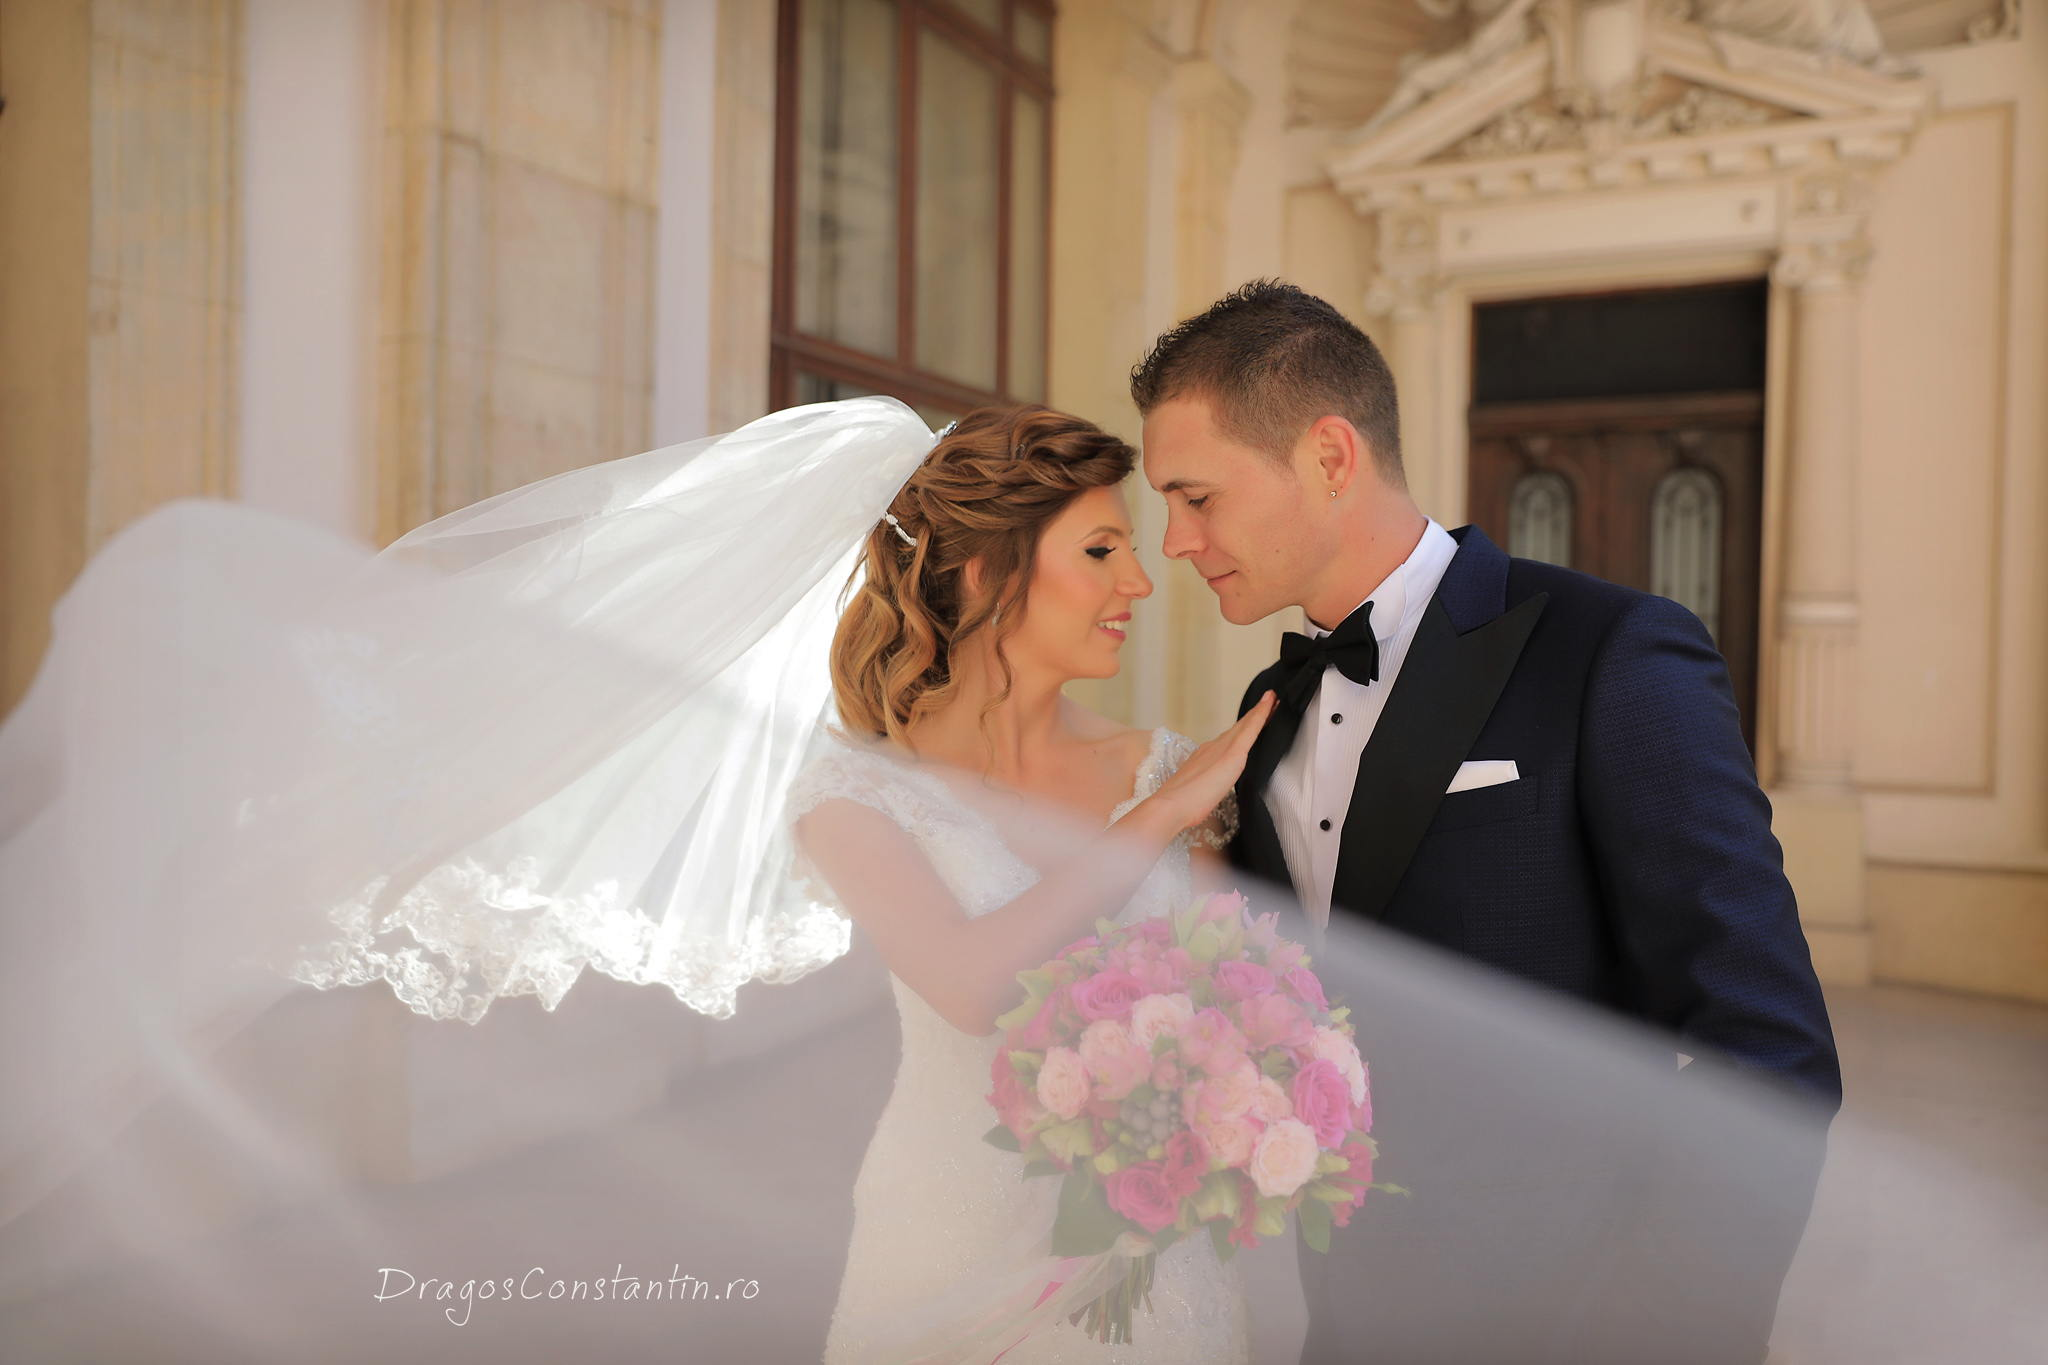 Fotograf de nunta Bucuresti - Wedding photographer in Bucharest